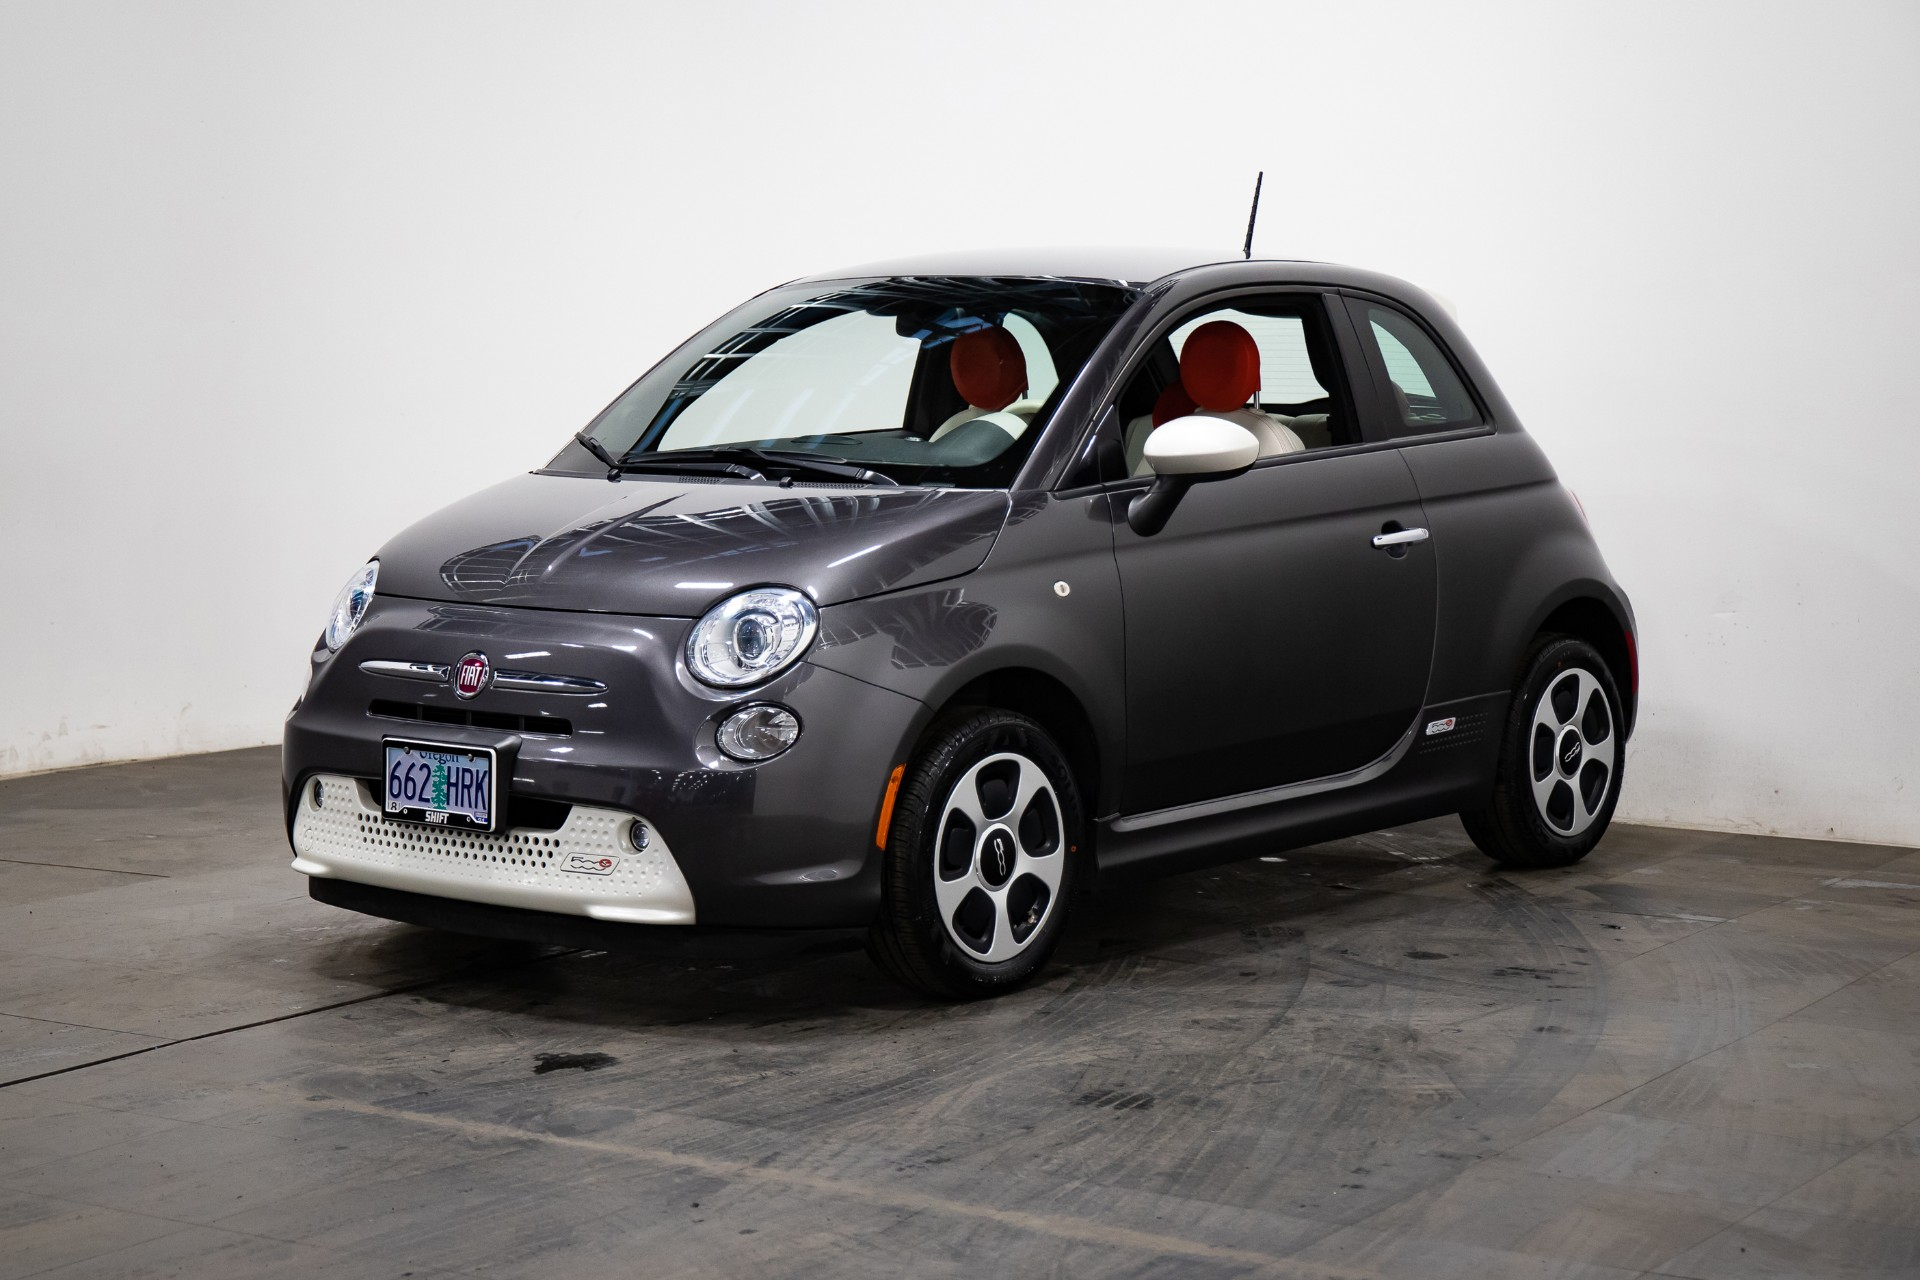 2015 Fiat 500e (from $8,500)